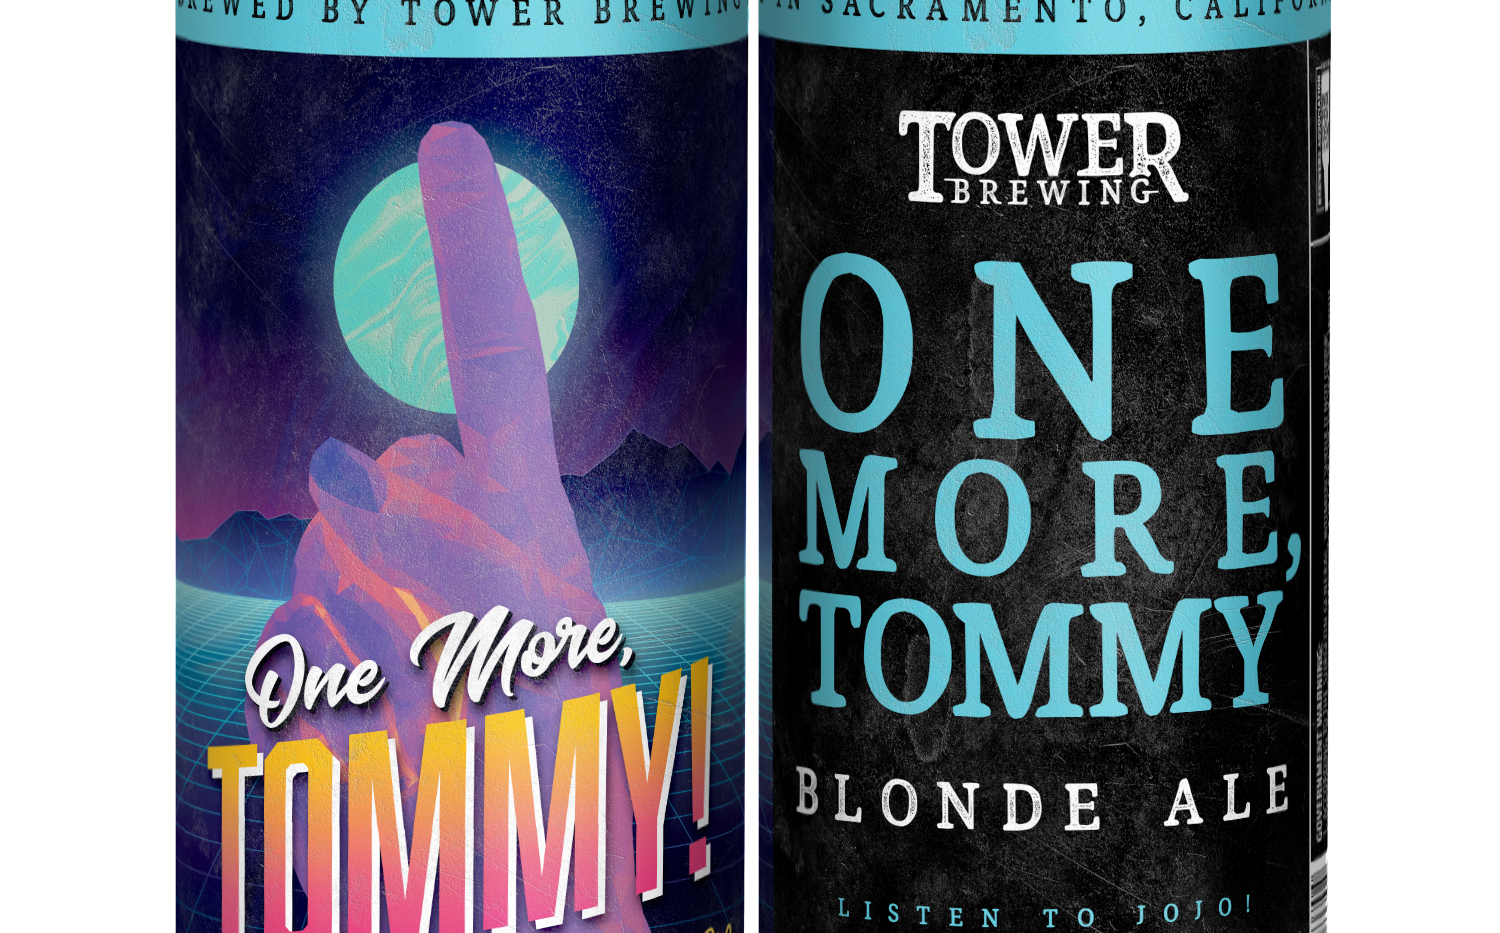 one more tommy 4 pack - tower brewing